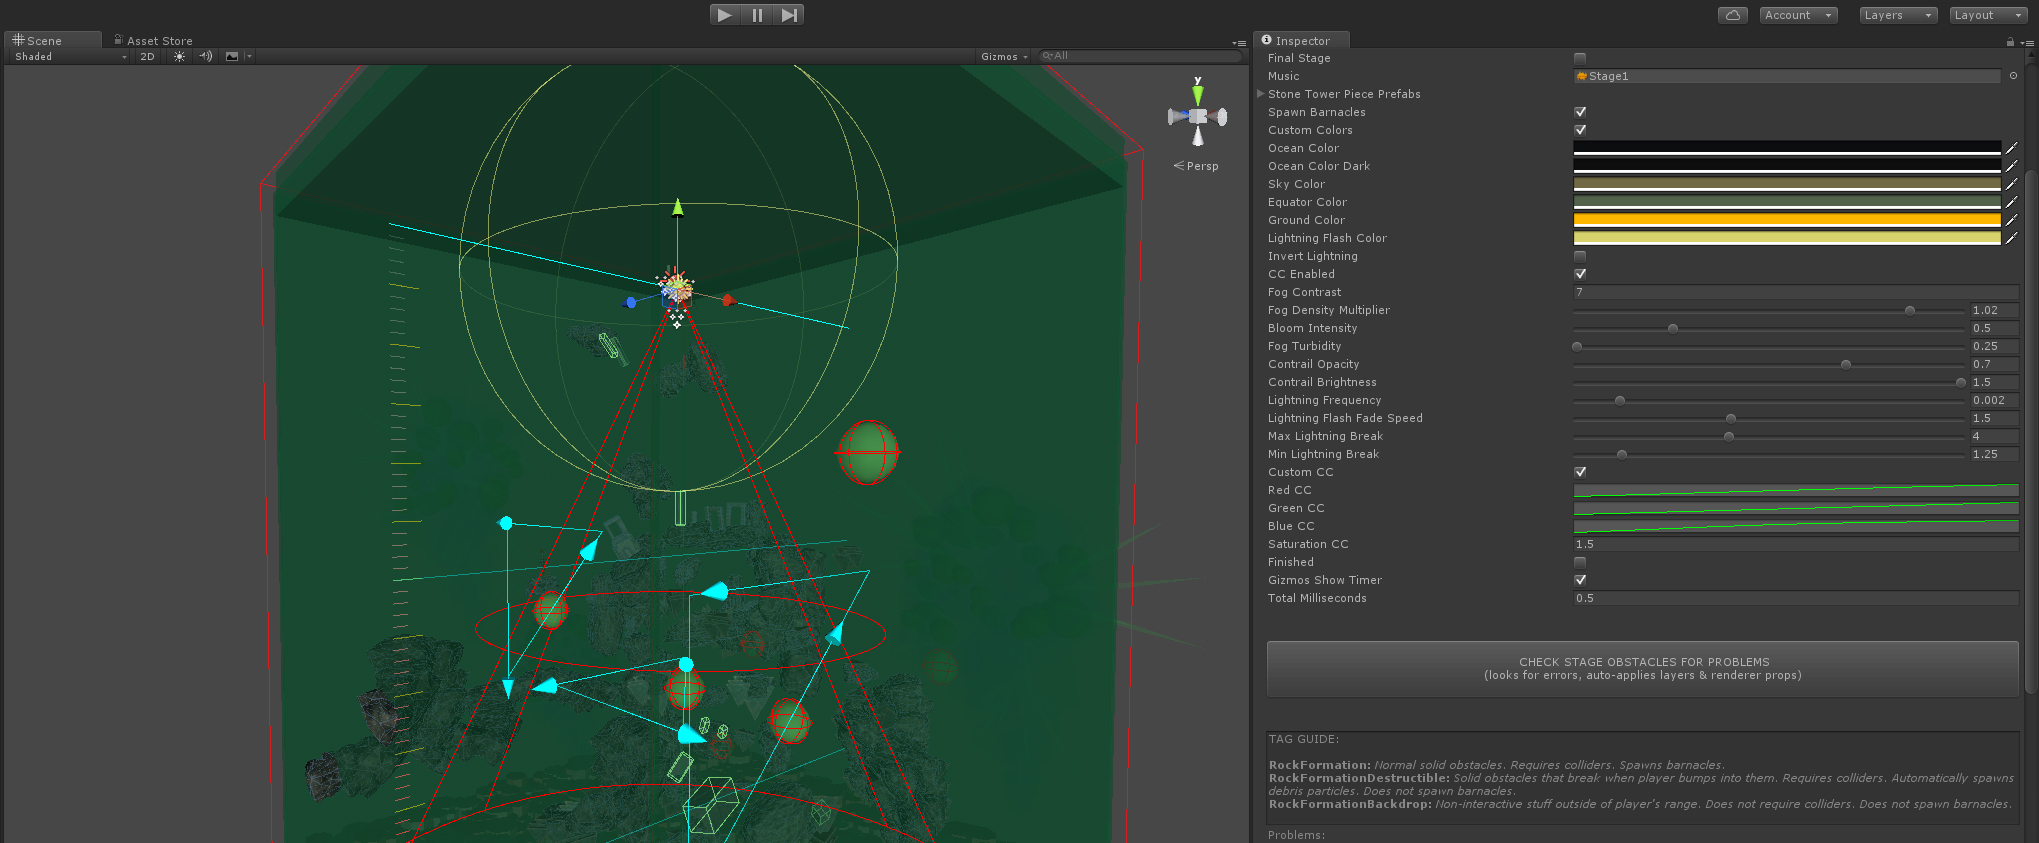 Custom stage editor in the Unity engine